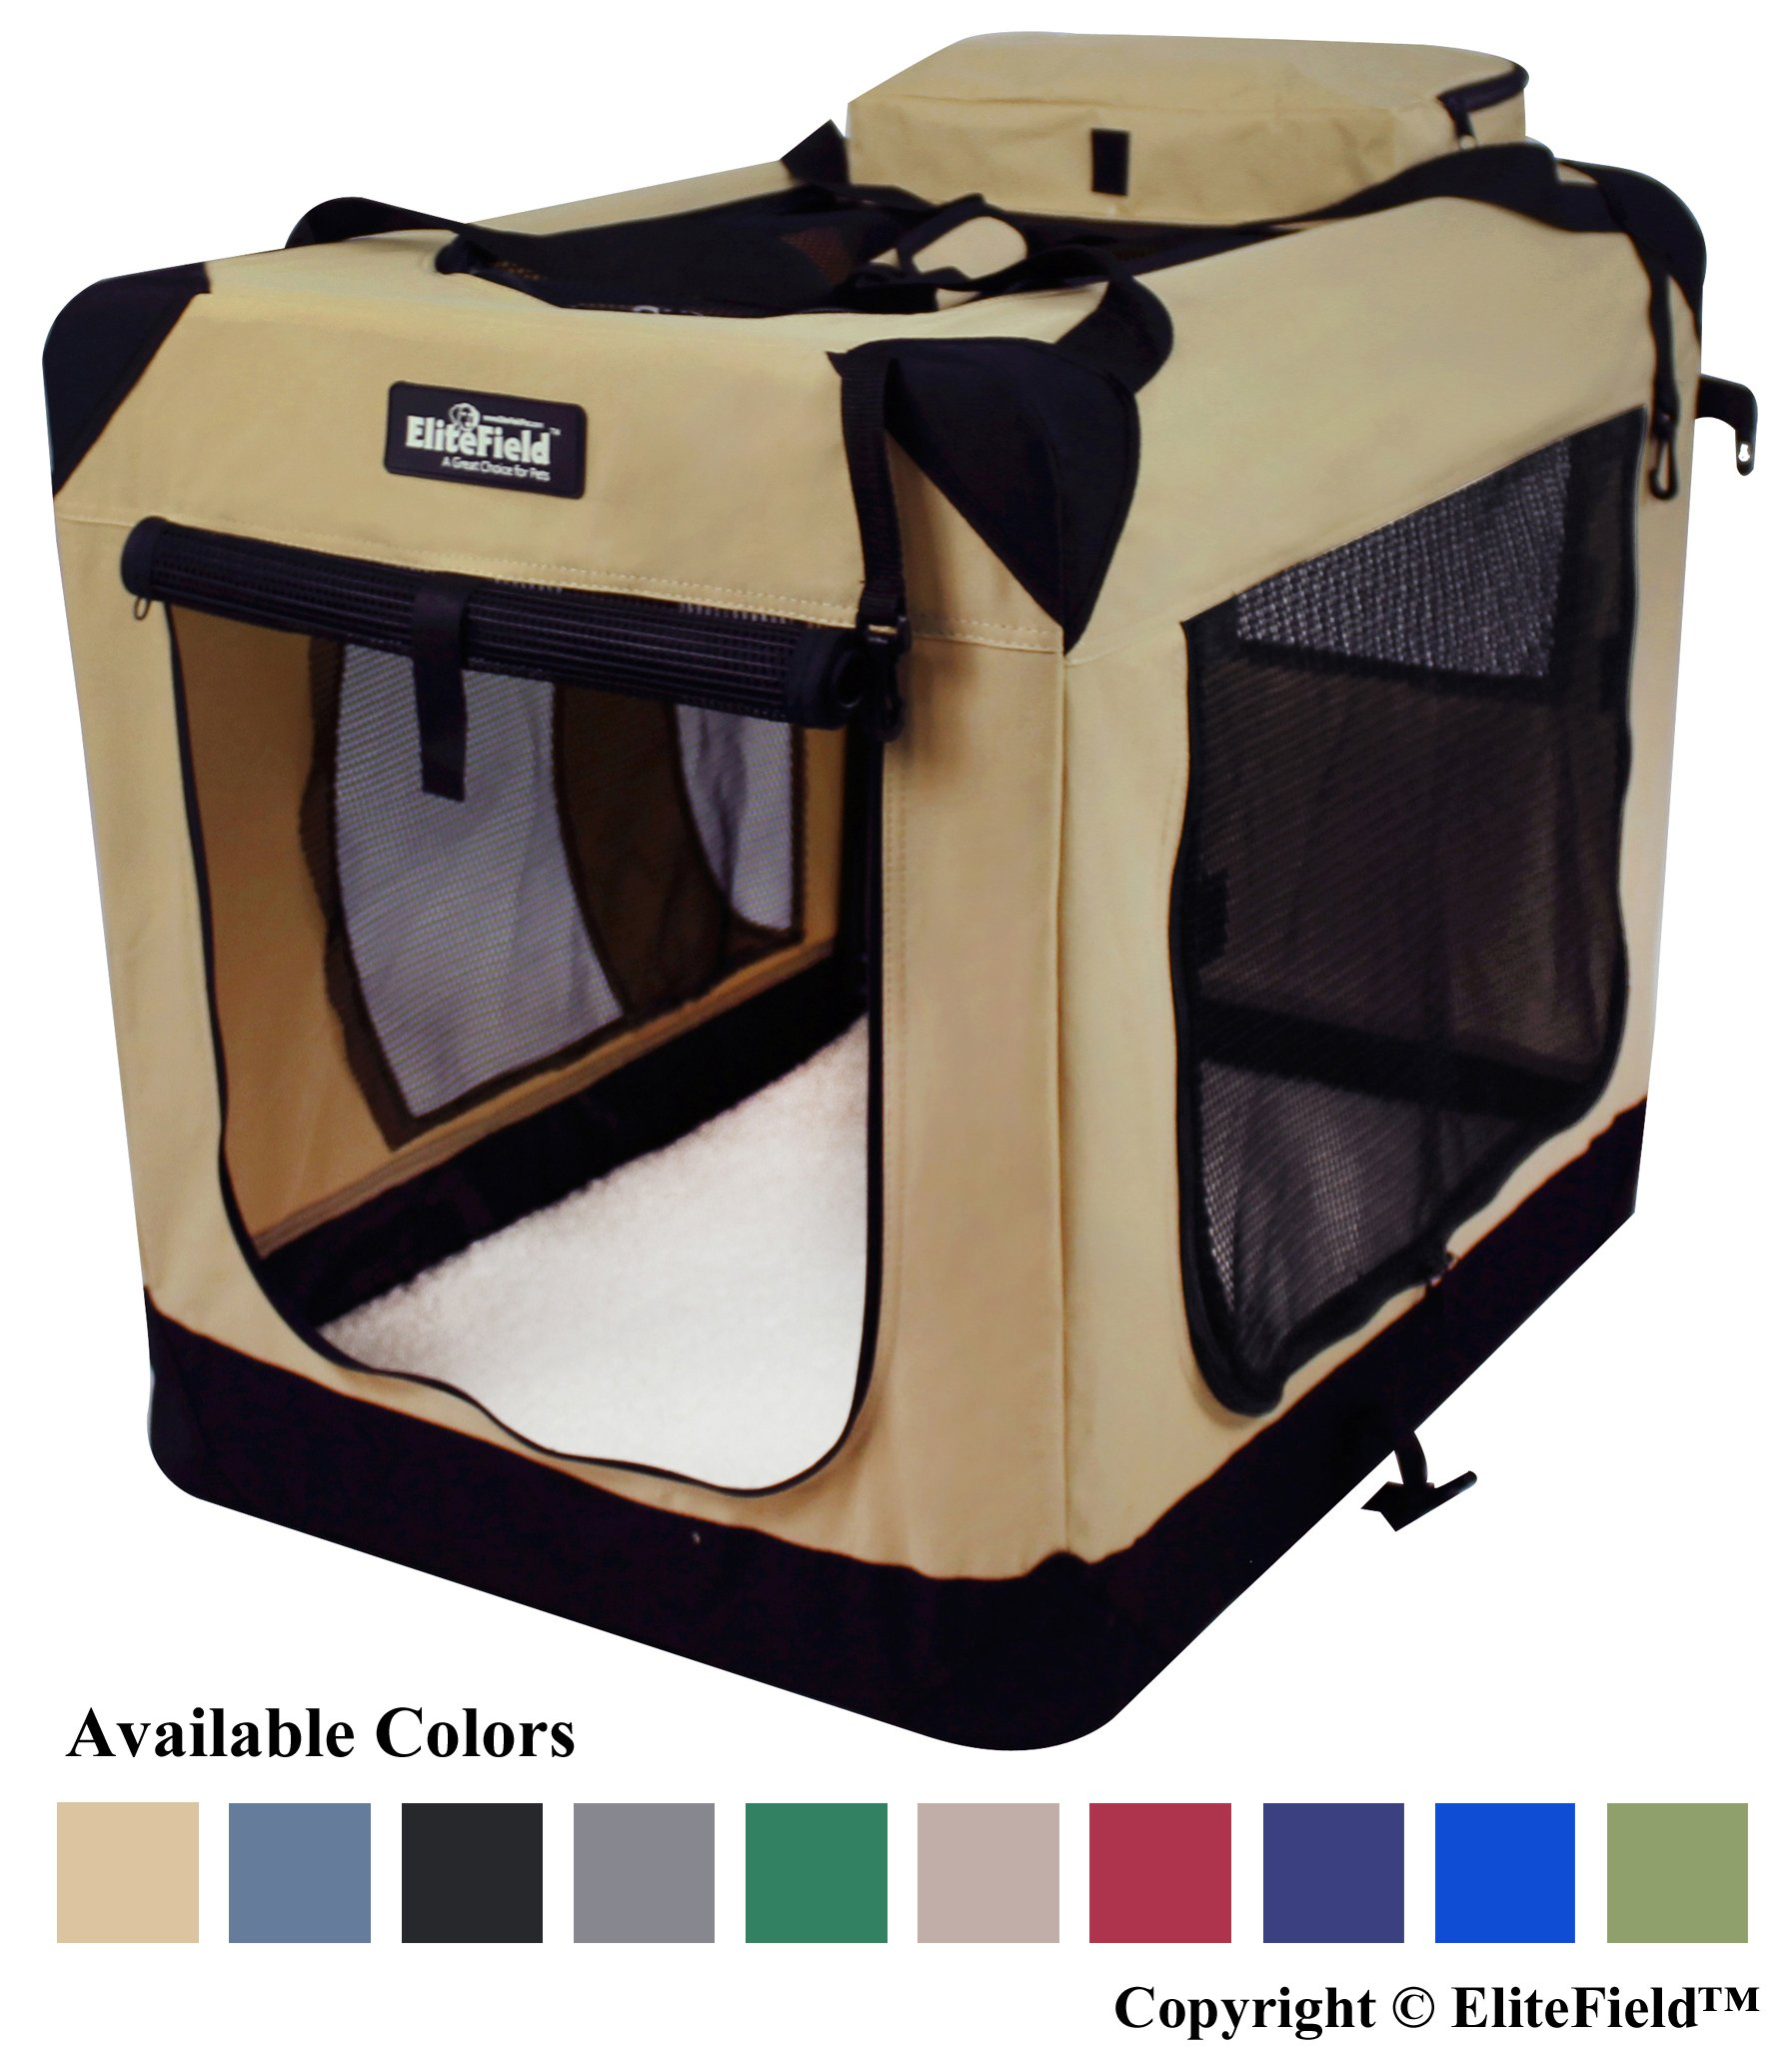 EliteField 3-Door Folding Soft Dog Crate, Indoor & Outdoor Pet Home, Multiple Sizes and Colors Available (36''L x 24''W x 28''H, Beige)